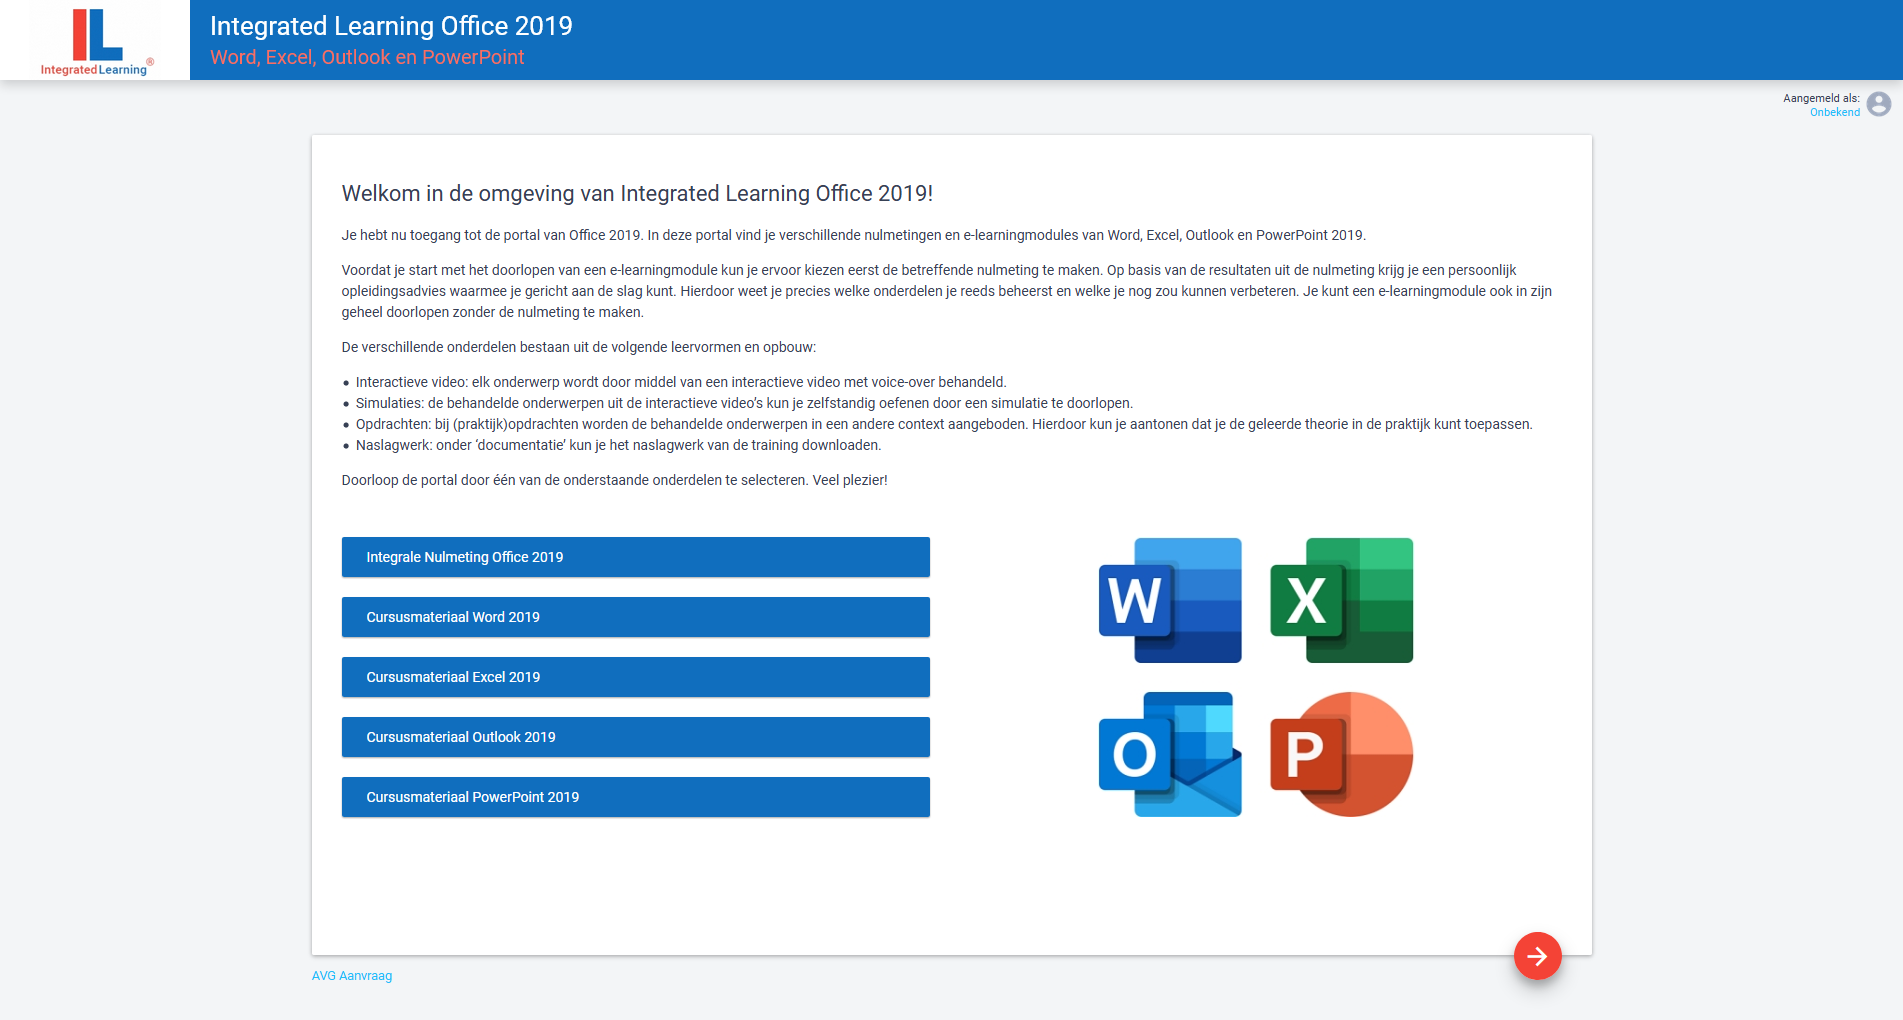 Integrated Learning Office 2019 portal